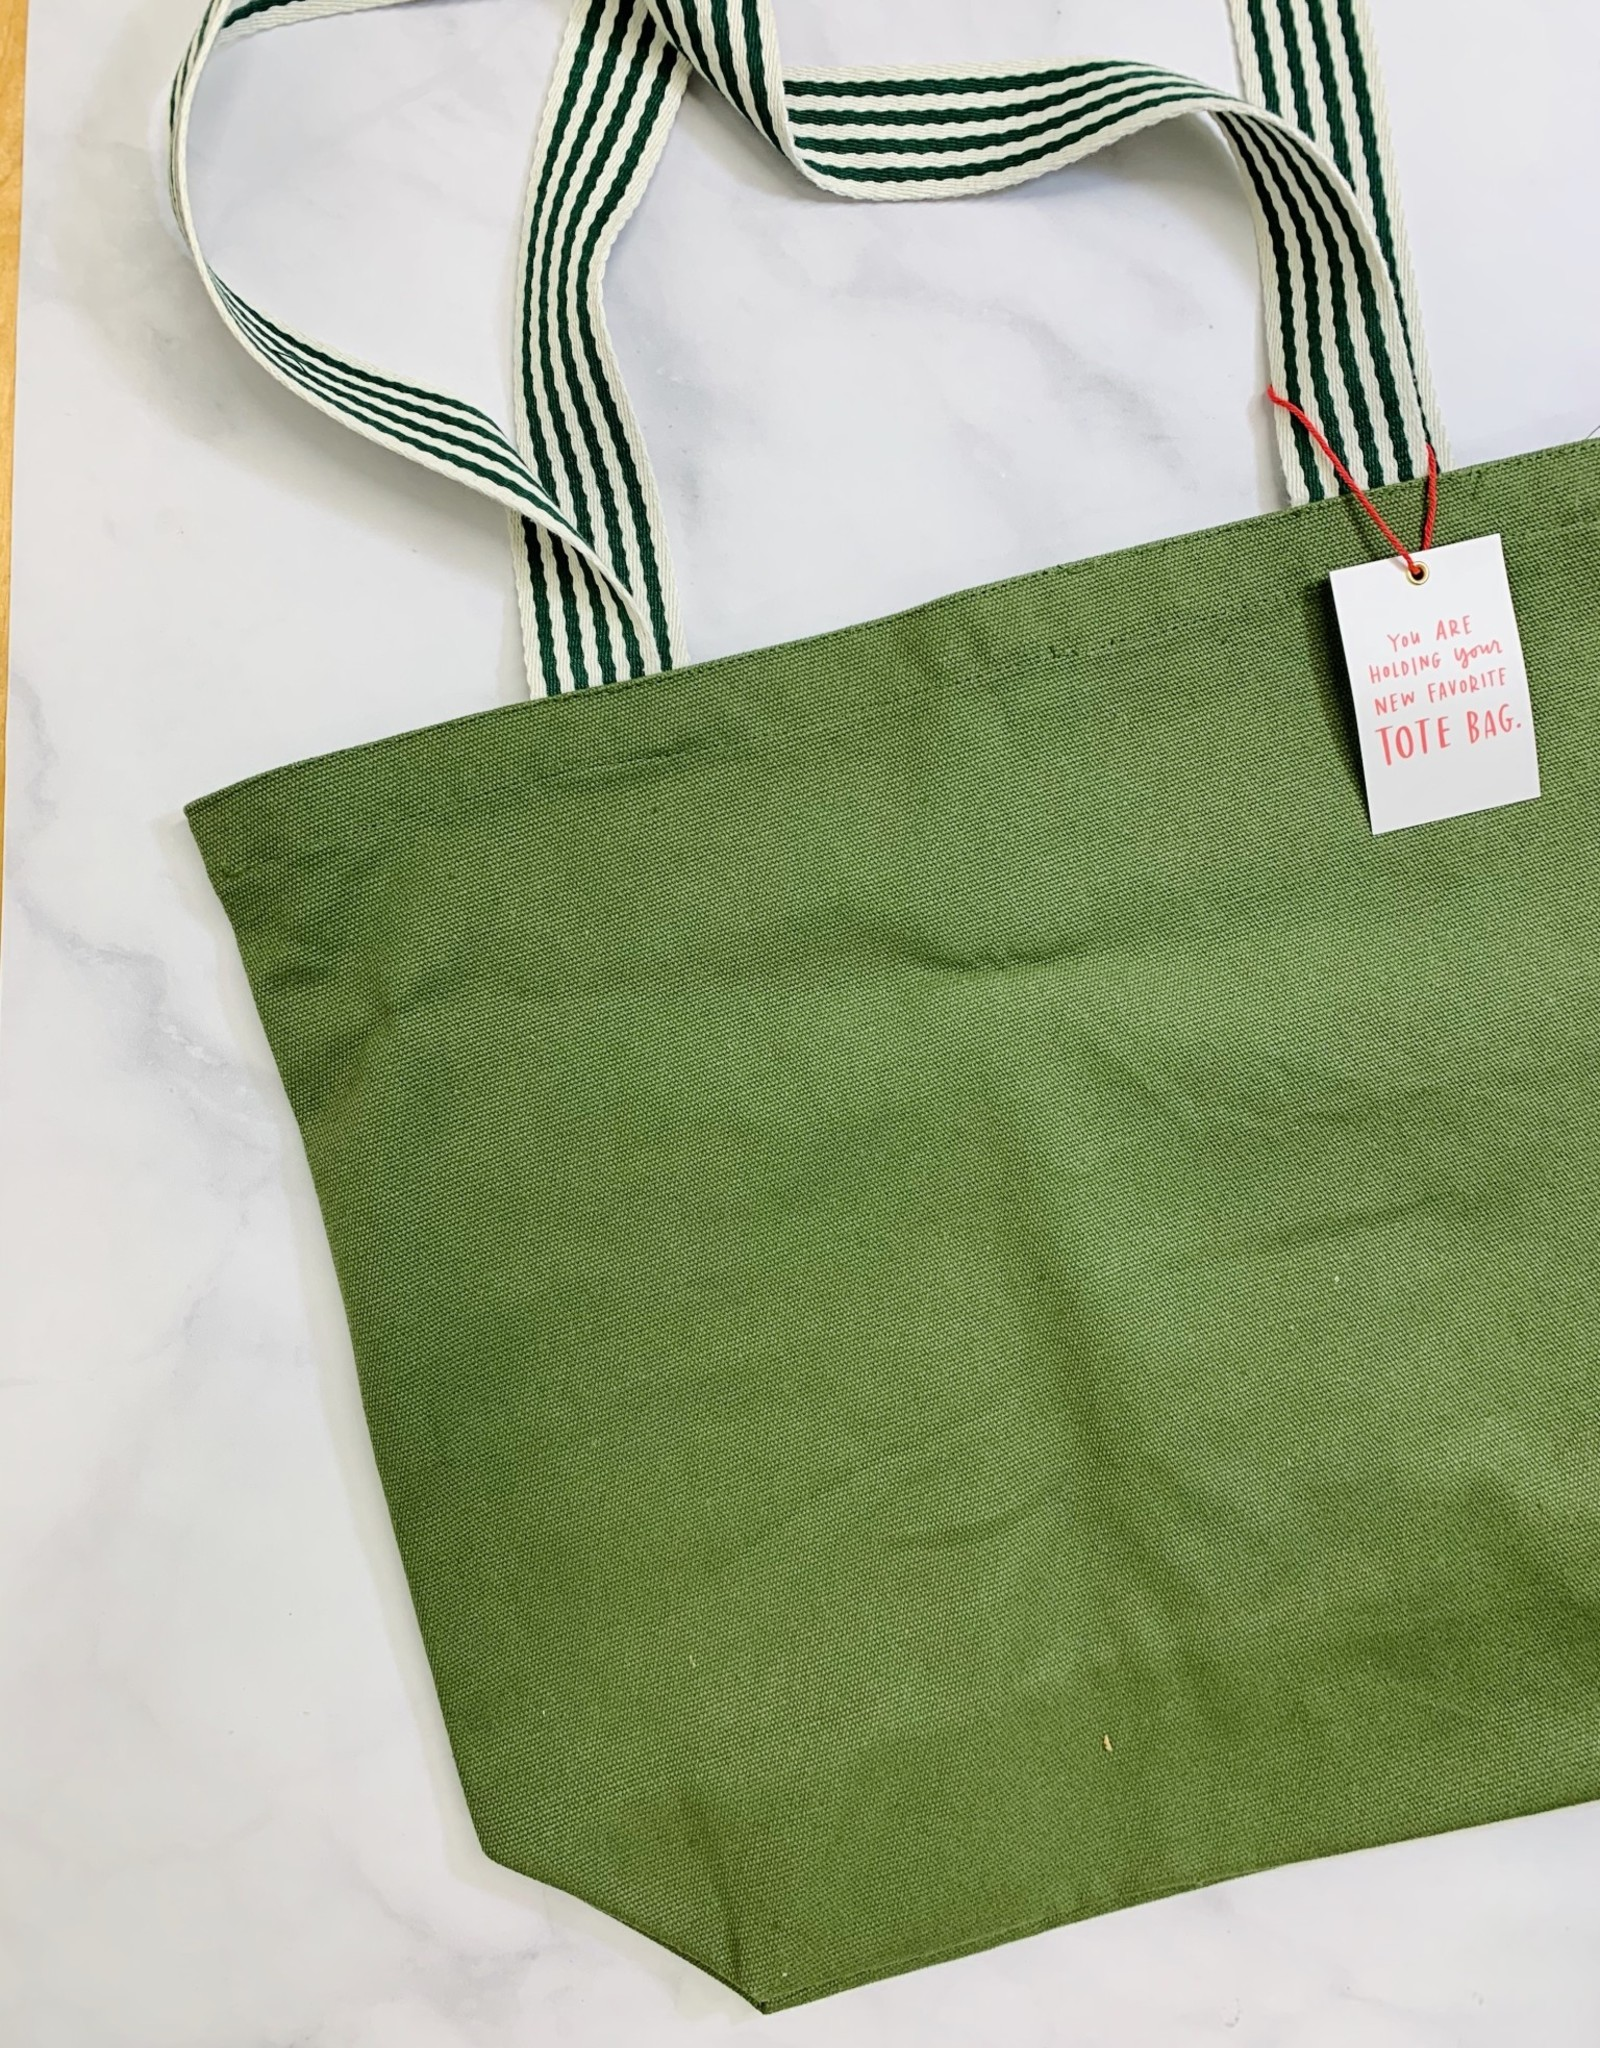 emily mcdowell Olive Groceries & Shit Tote